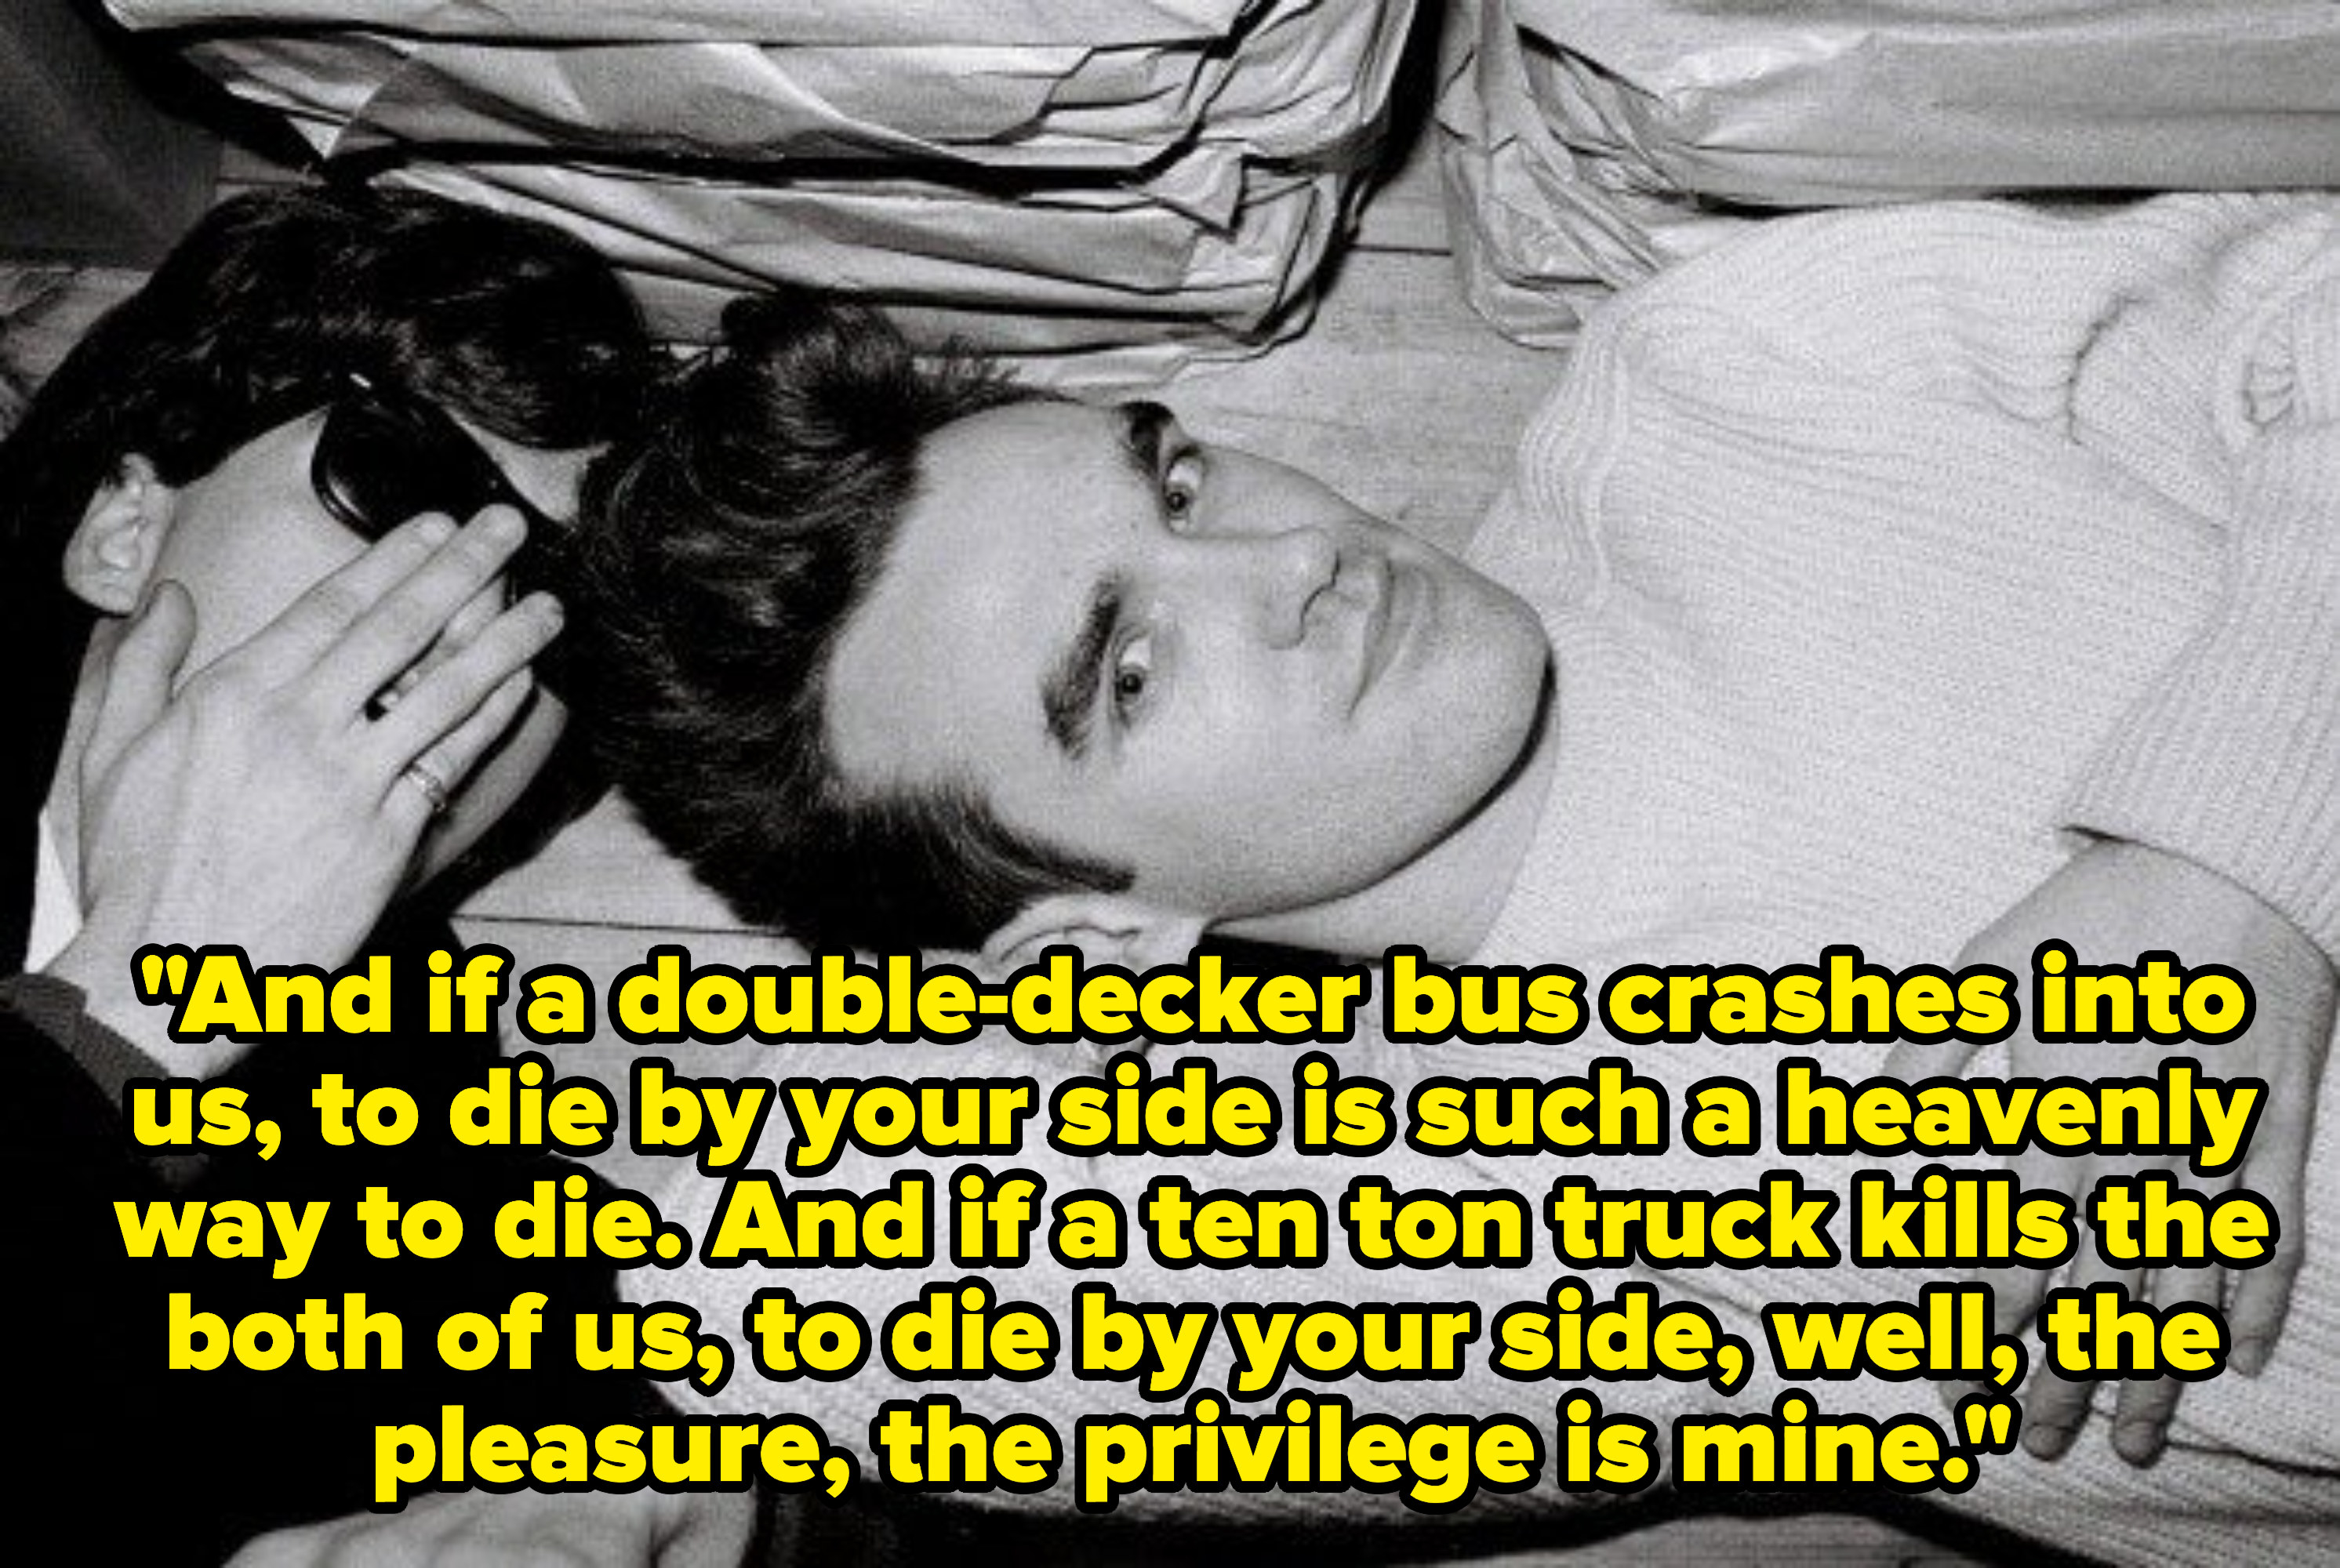 Lyrics: And if a double-decker bus crashes into us, to die by your side is such a heavenly way to die. And if a ten ton truck kills the both of us, to die by your side, well, the pleasure, the privilege is mine